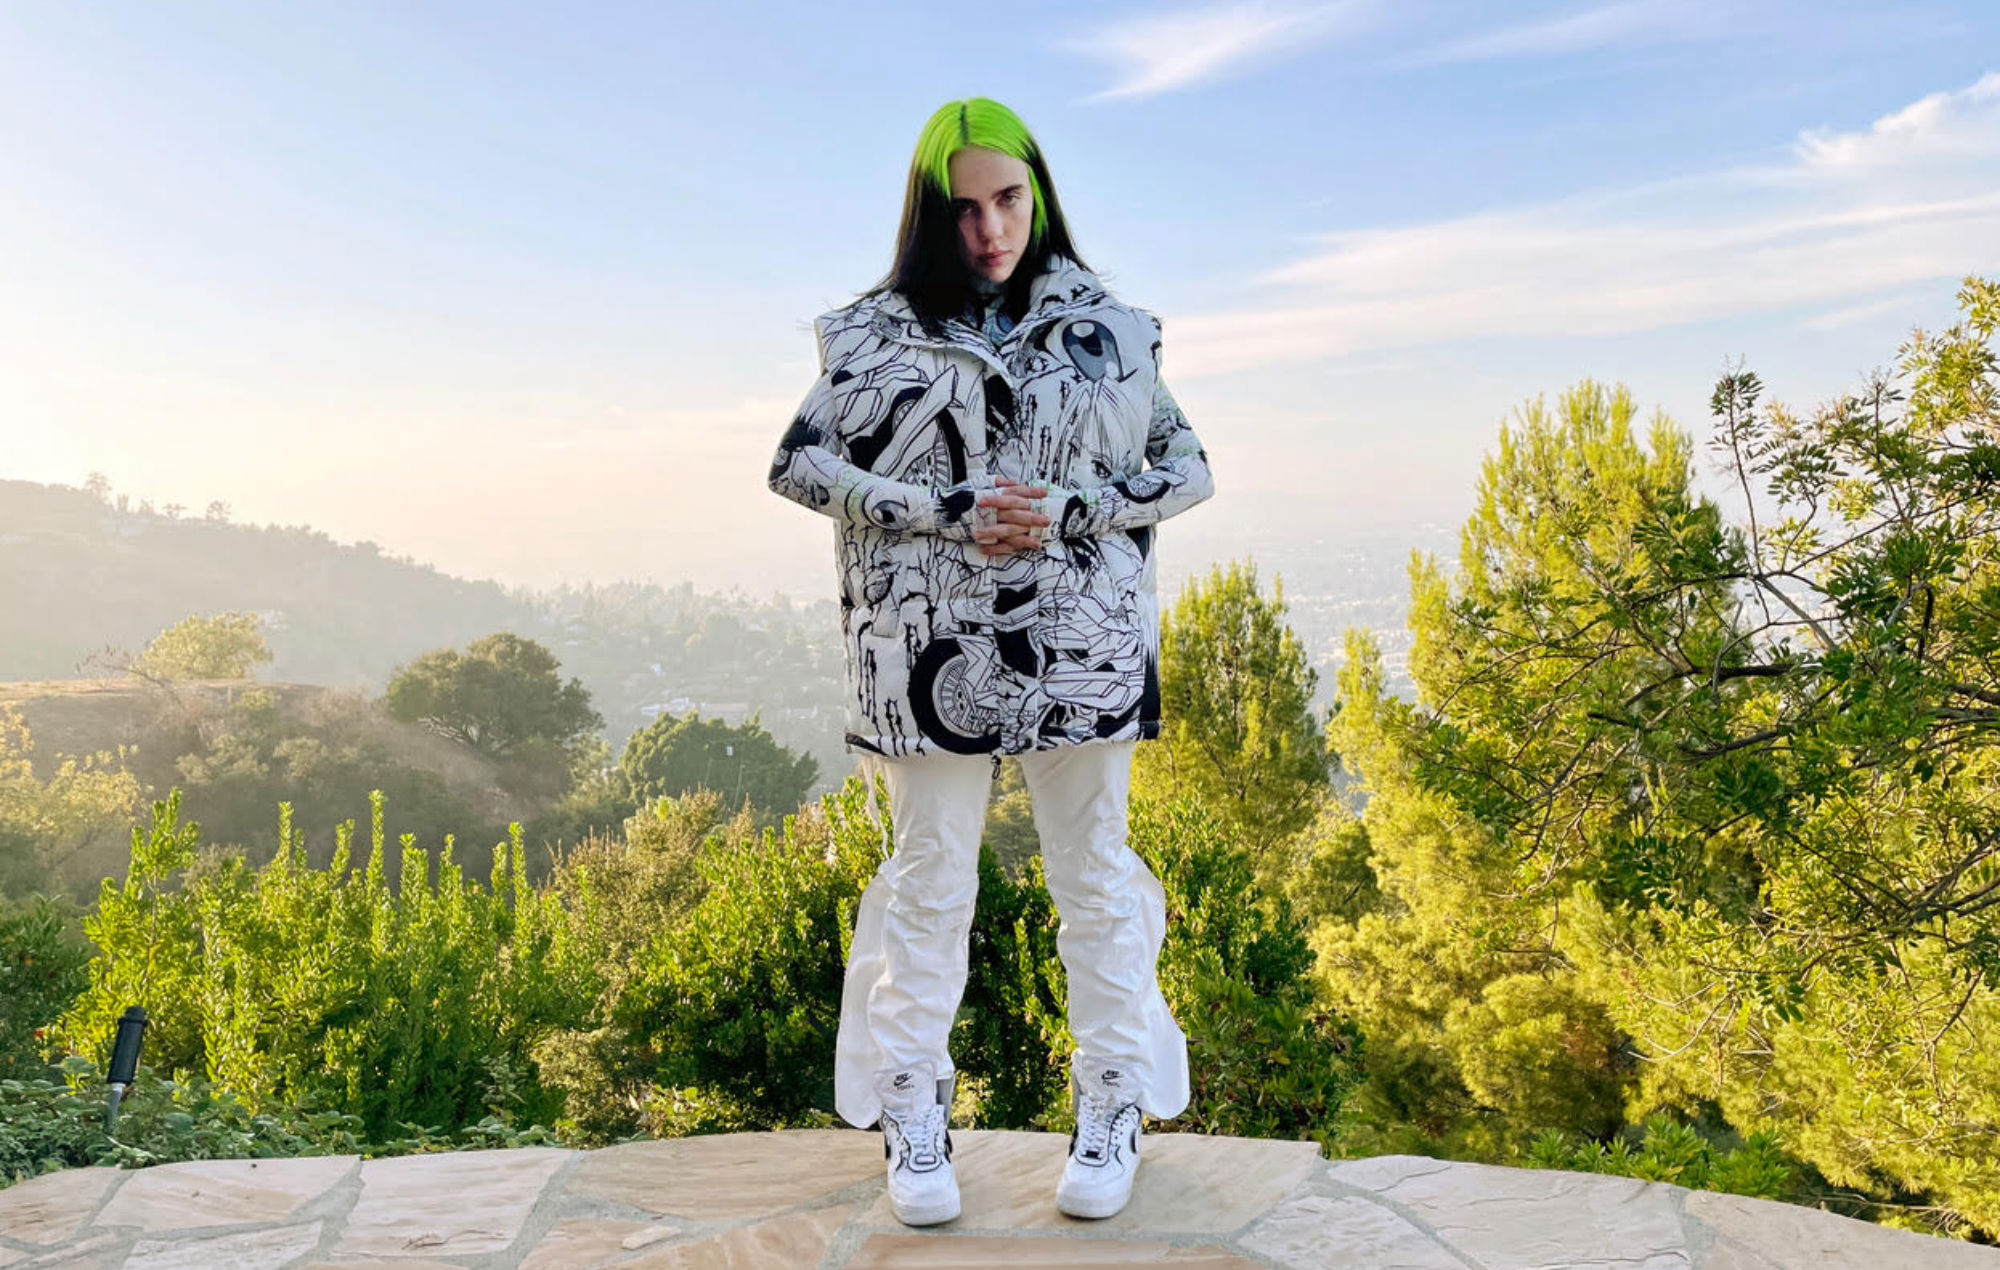 Billie Eilish Twerking For The 'Gram Has Fans Ecstatic! See The Viral Video